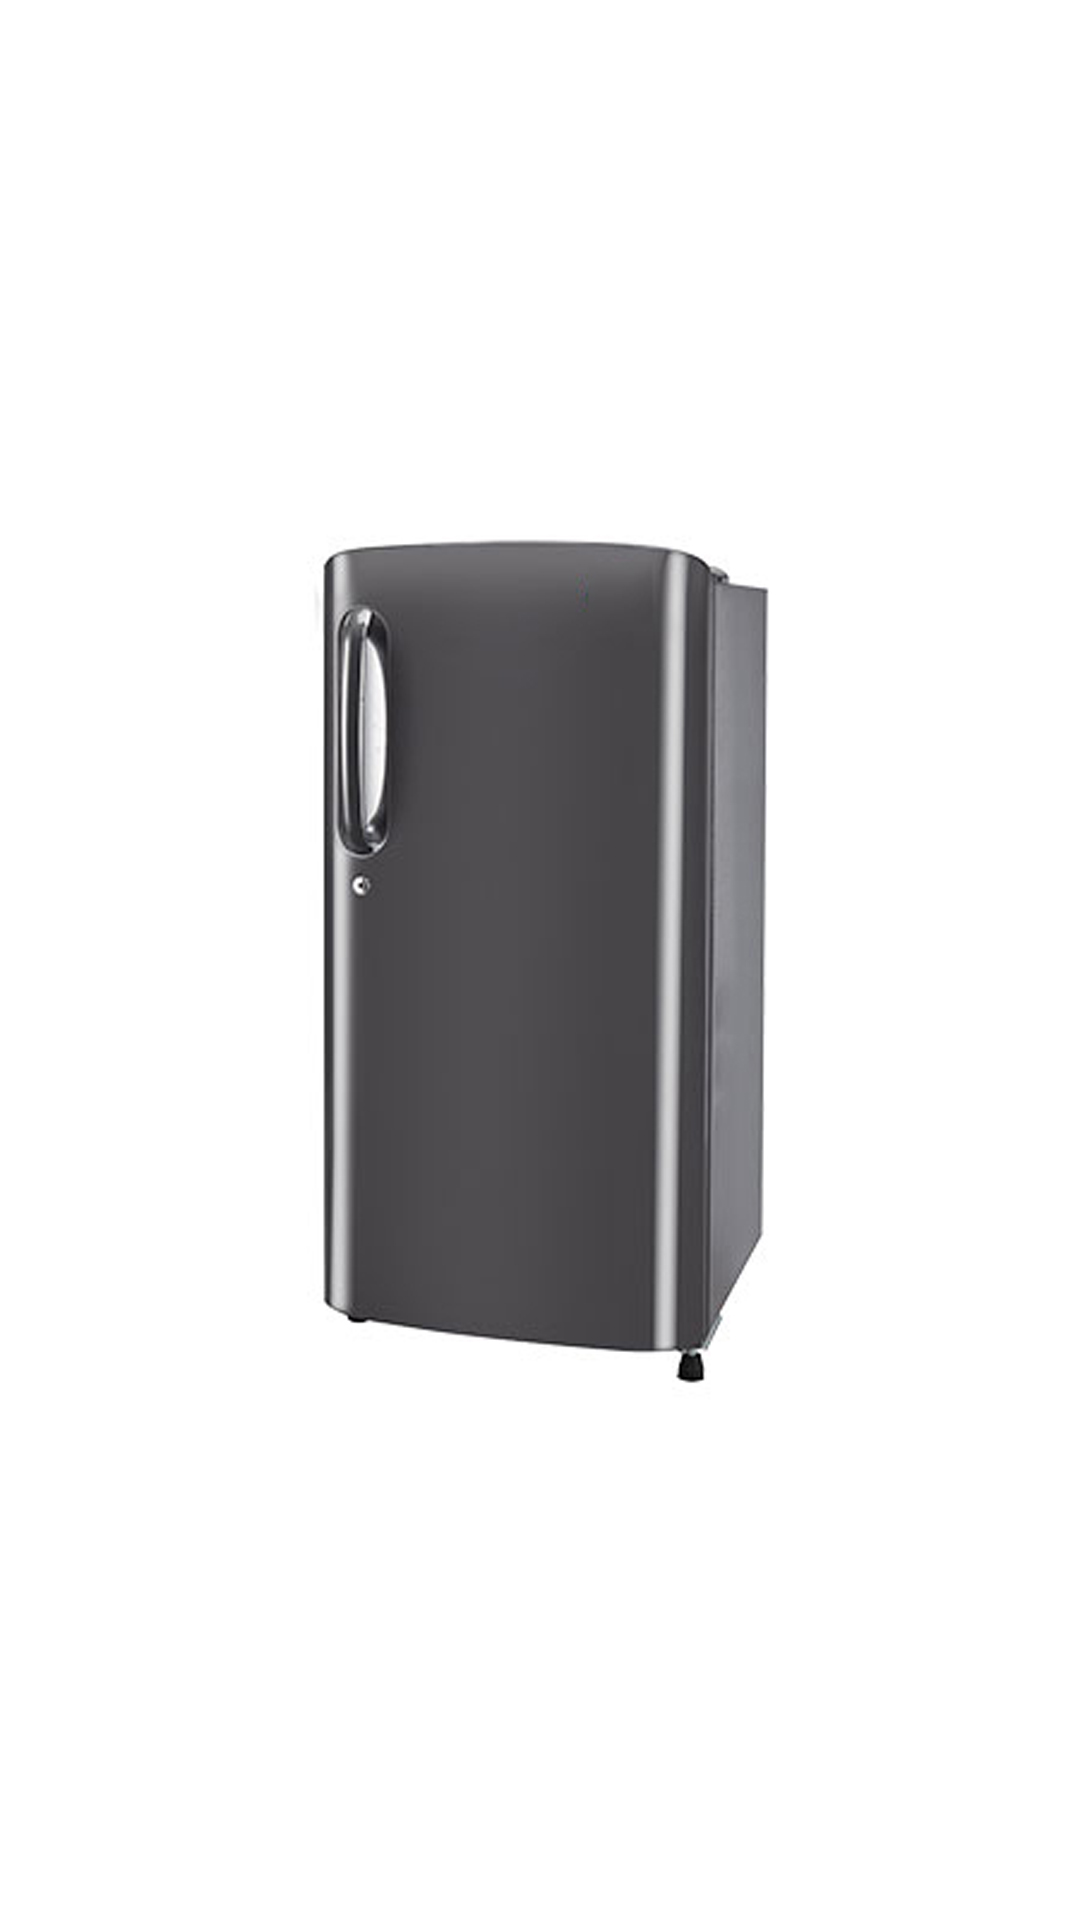 LG GL-B201ATNL 190 L Single Door Refrigerator (Titanium)